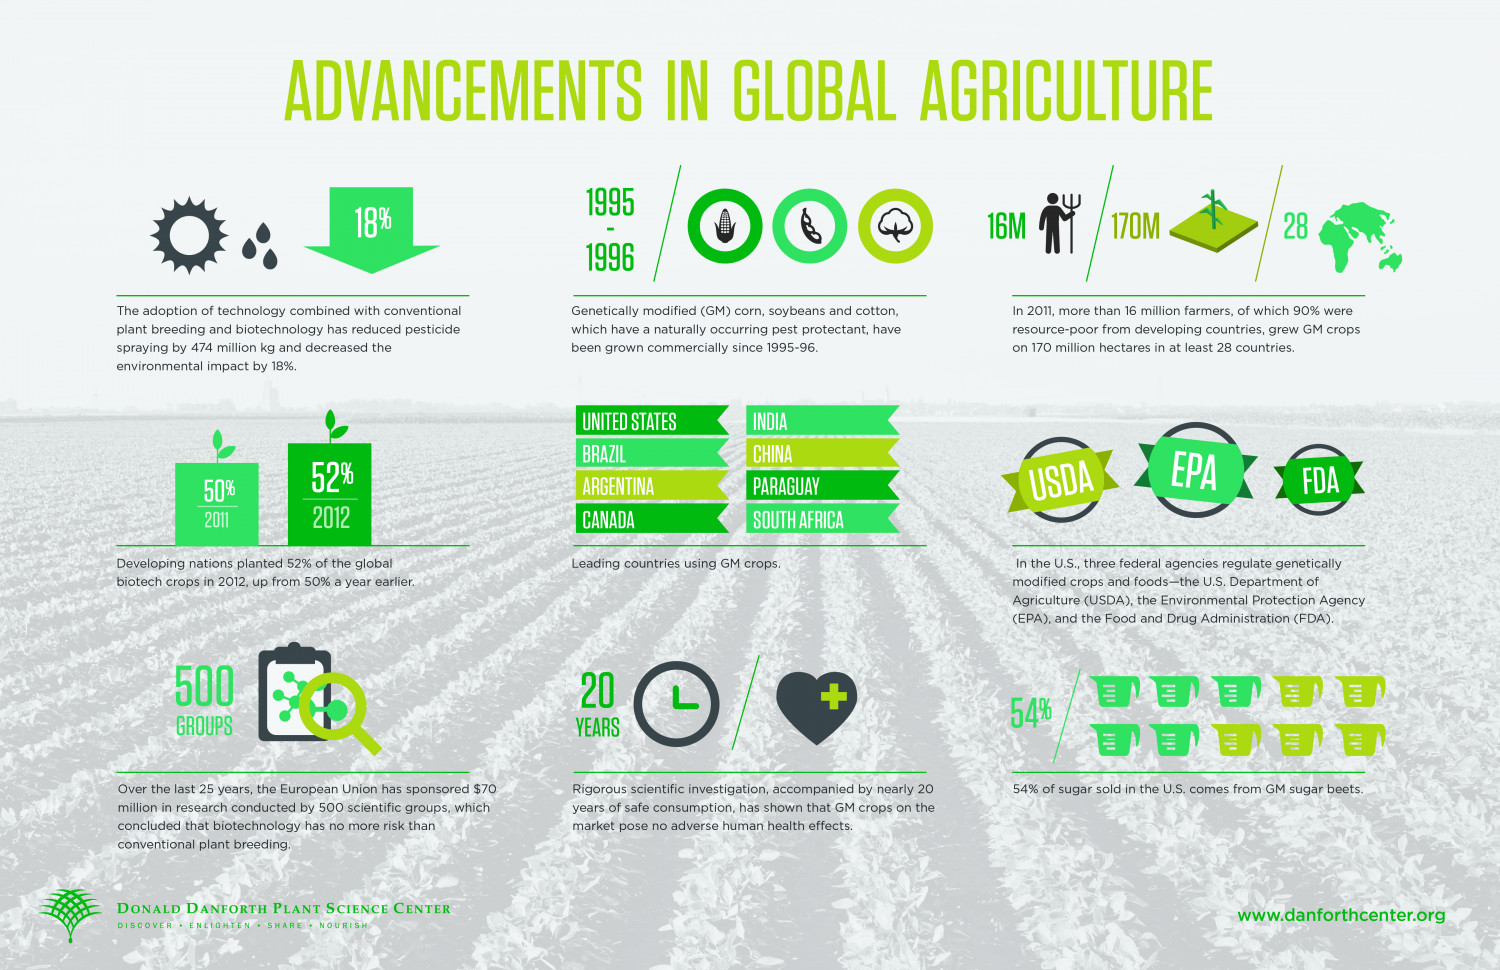 Advancements in Global Agriculture Infographic